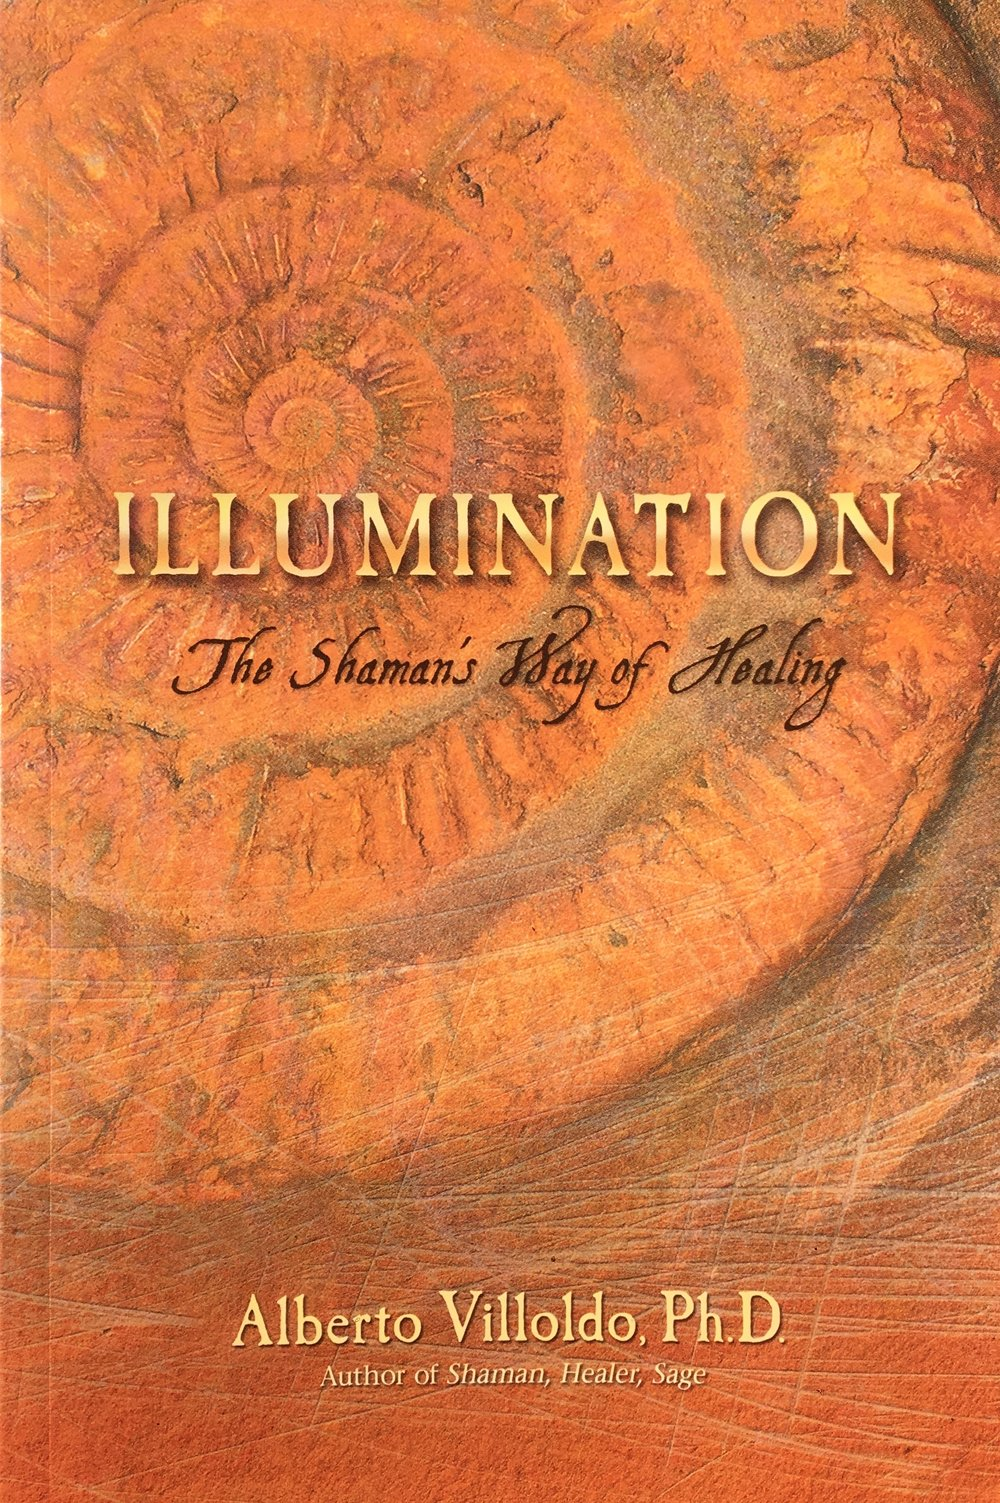 Illumination The Shaman Way of Healing BOOK.jpg